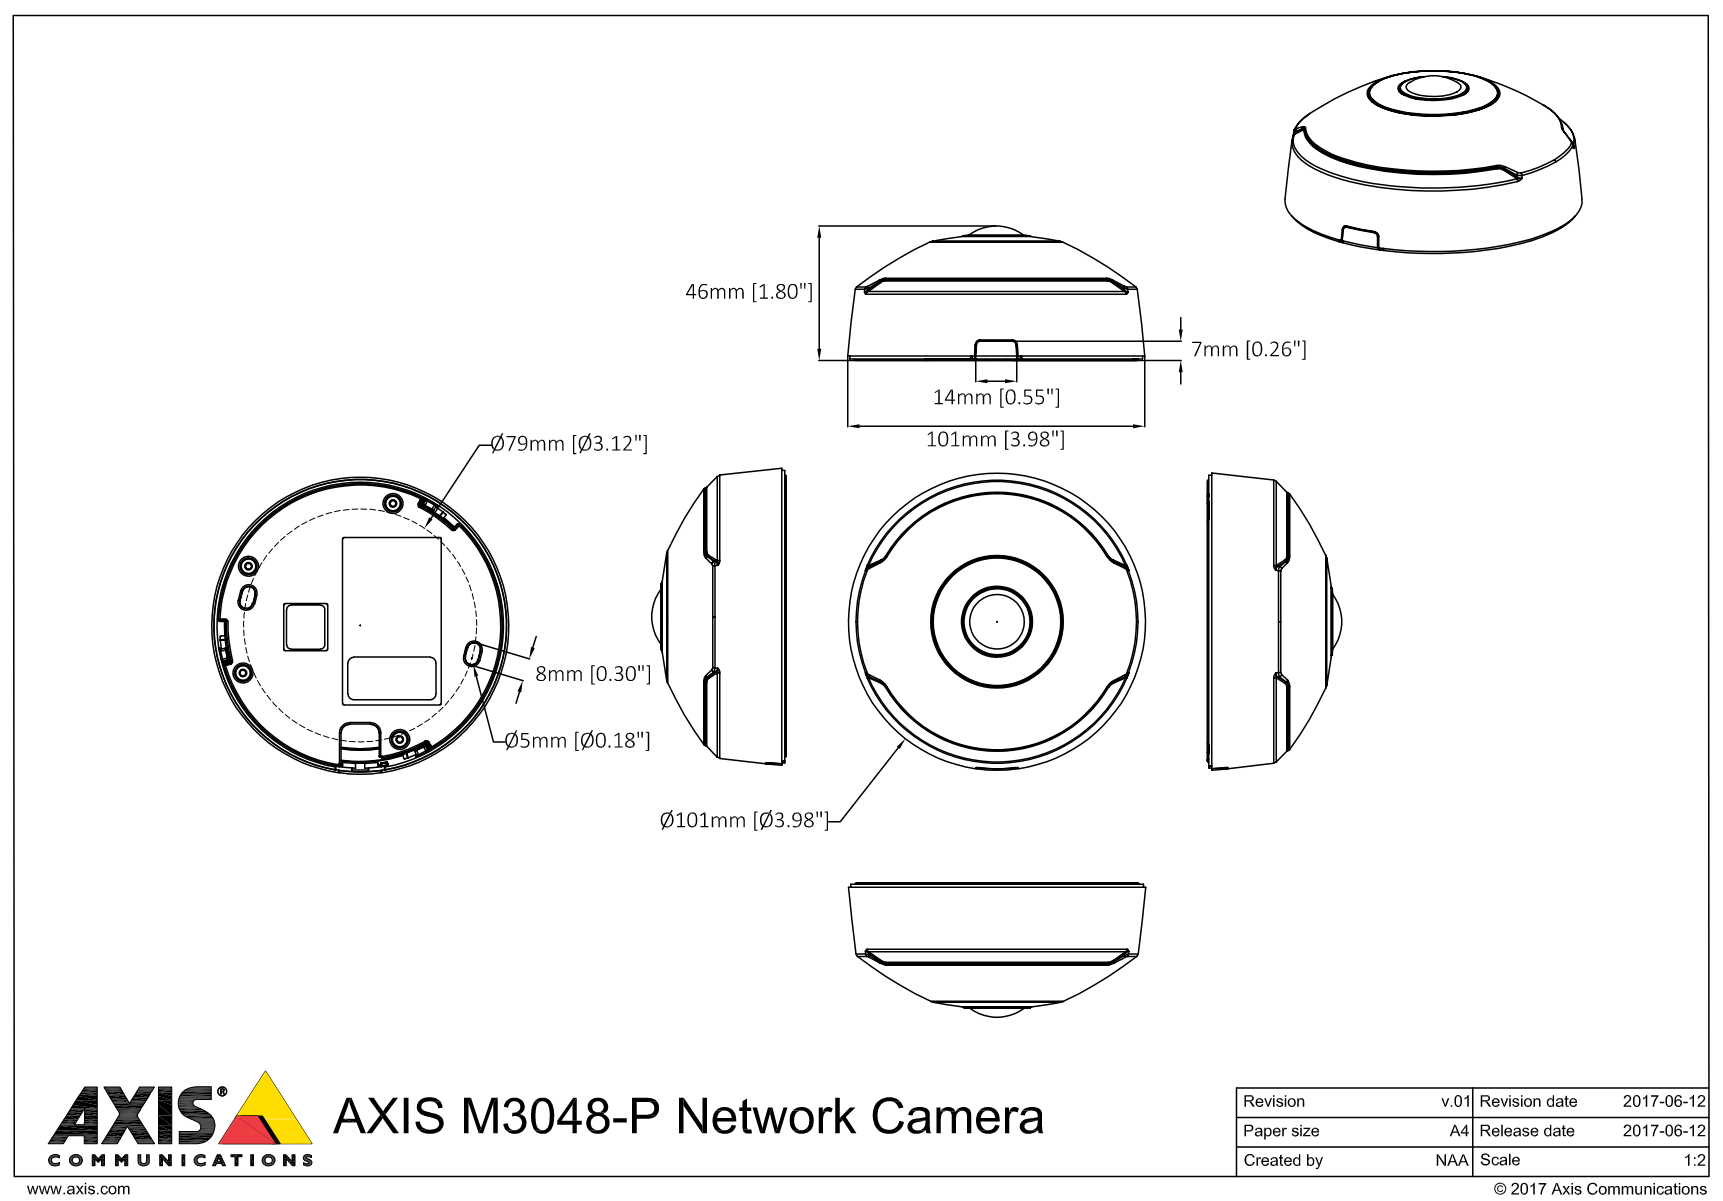 Axis M3048-P Dimensions